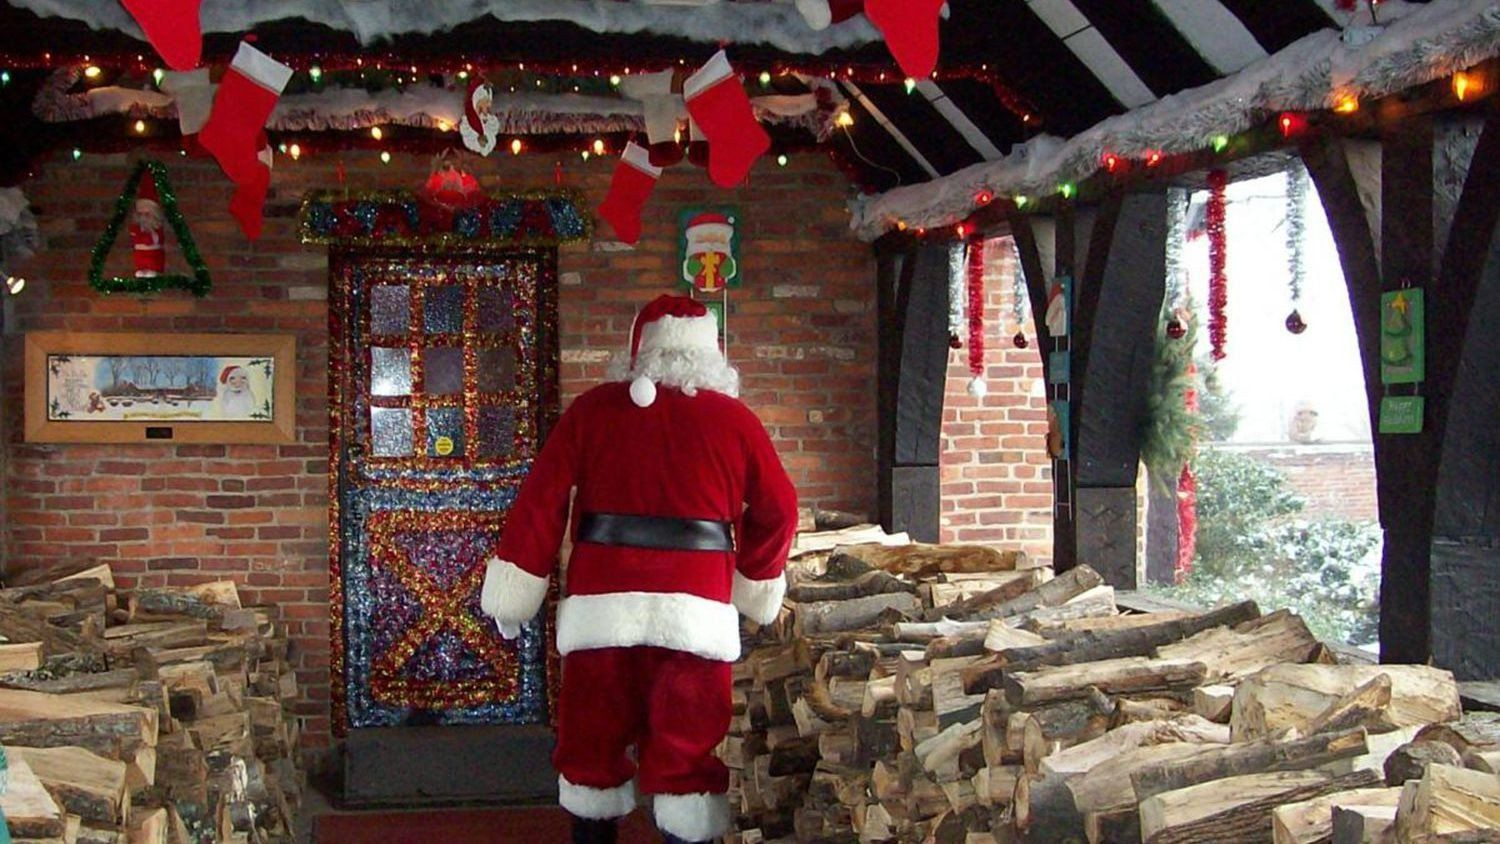 Christmas Village Torrington 2020 Santa Workshop Decoration Ideas Unique Christmas Village In